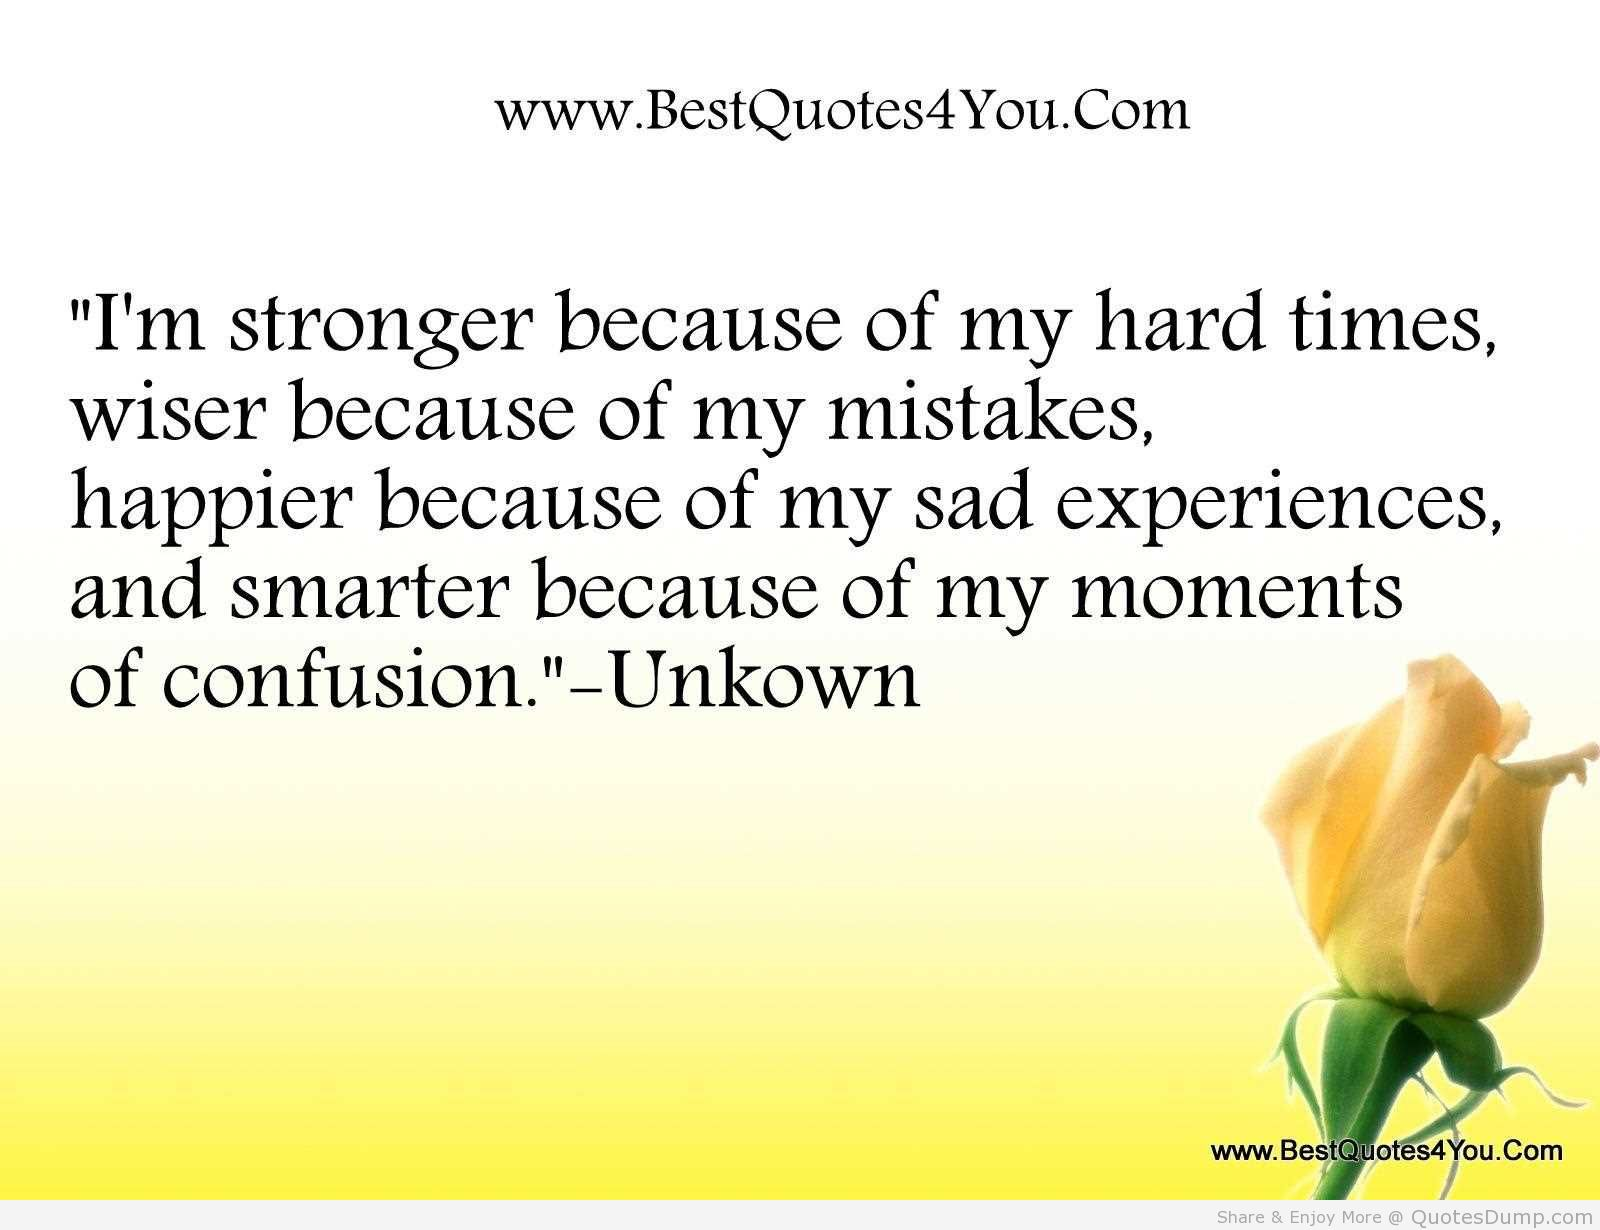 Uplifting Quotes For Hard Times. QuotesGram